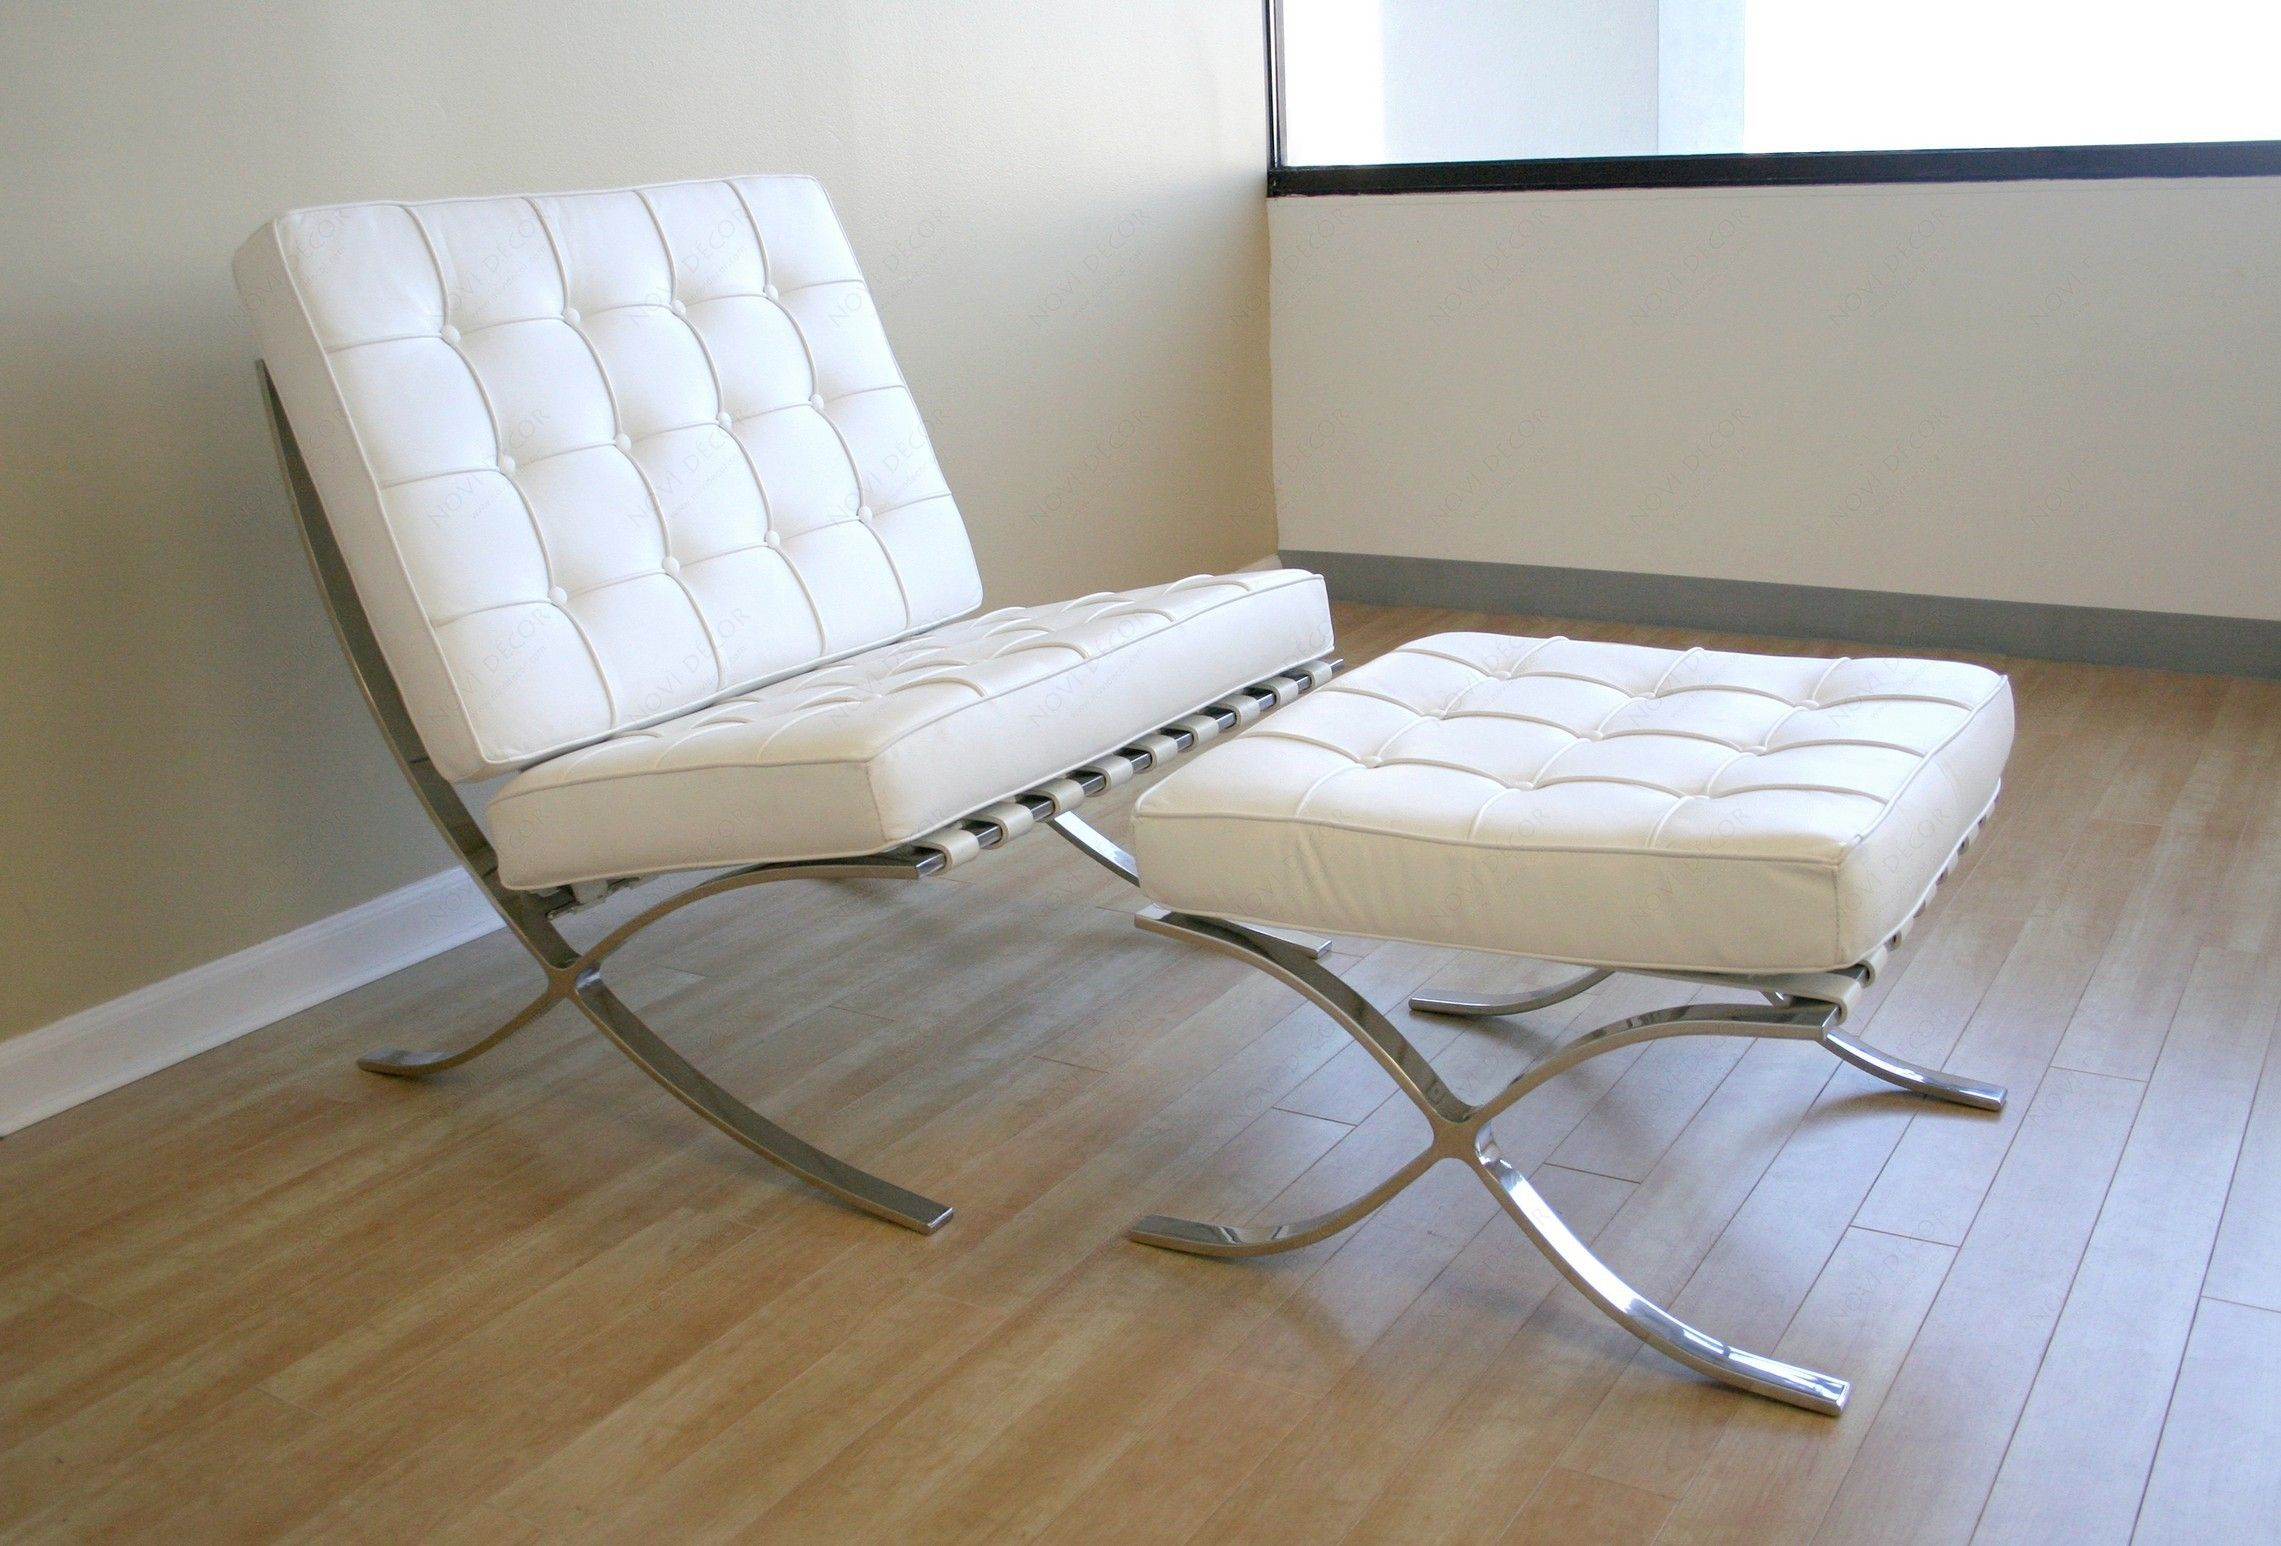 Astounding Barcelona Chair White Pavilion Chair Italian White Caraccident5 Cool Chair Designs And Ideas Caraccident5Info